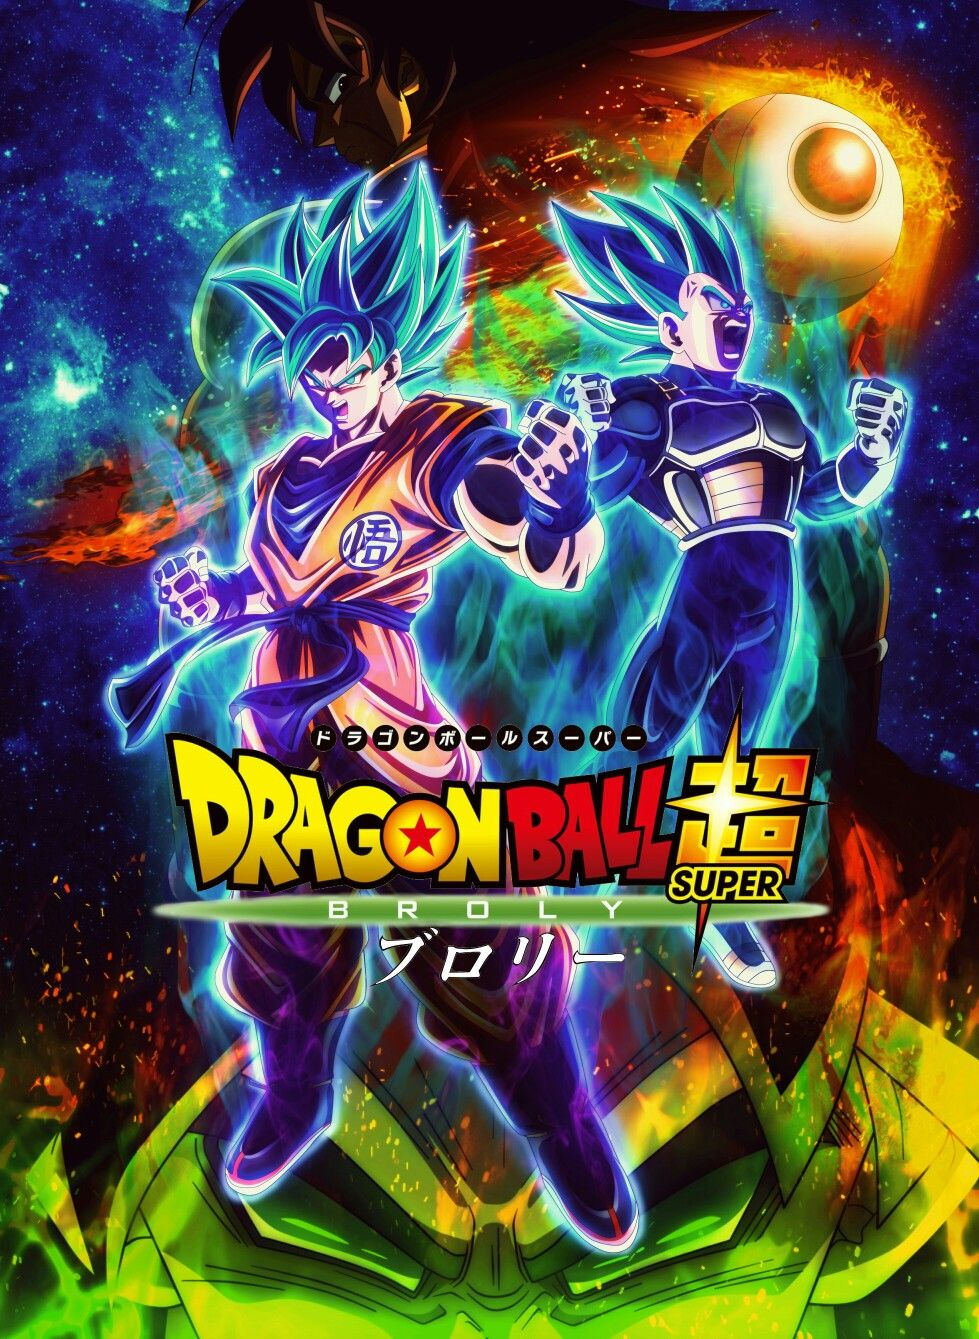 dragon ball super broly  Dragon Ball Super: Broly - The Movie | Dragon Ball | Pinterest ...